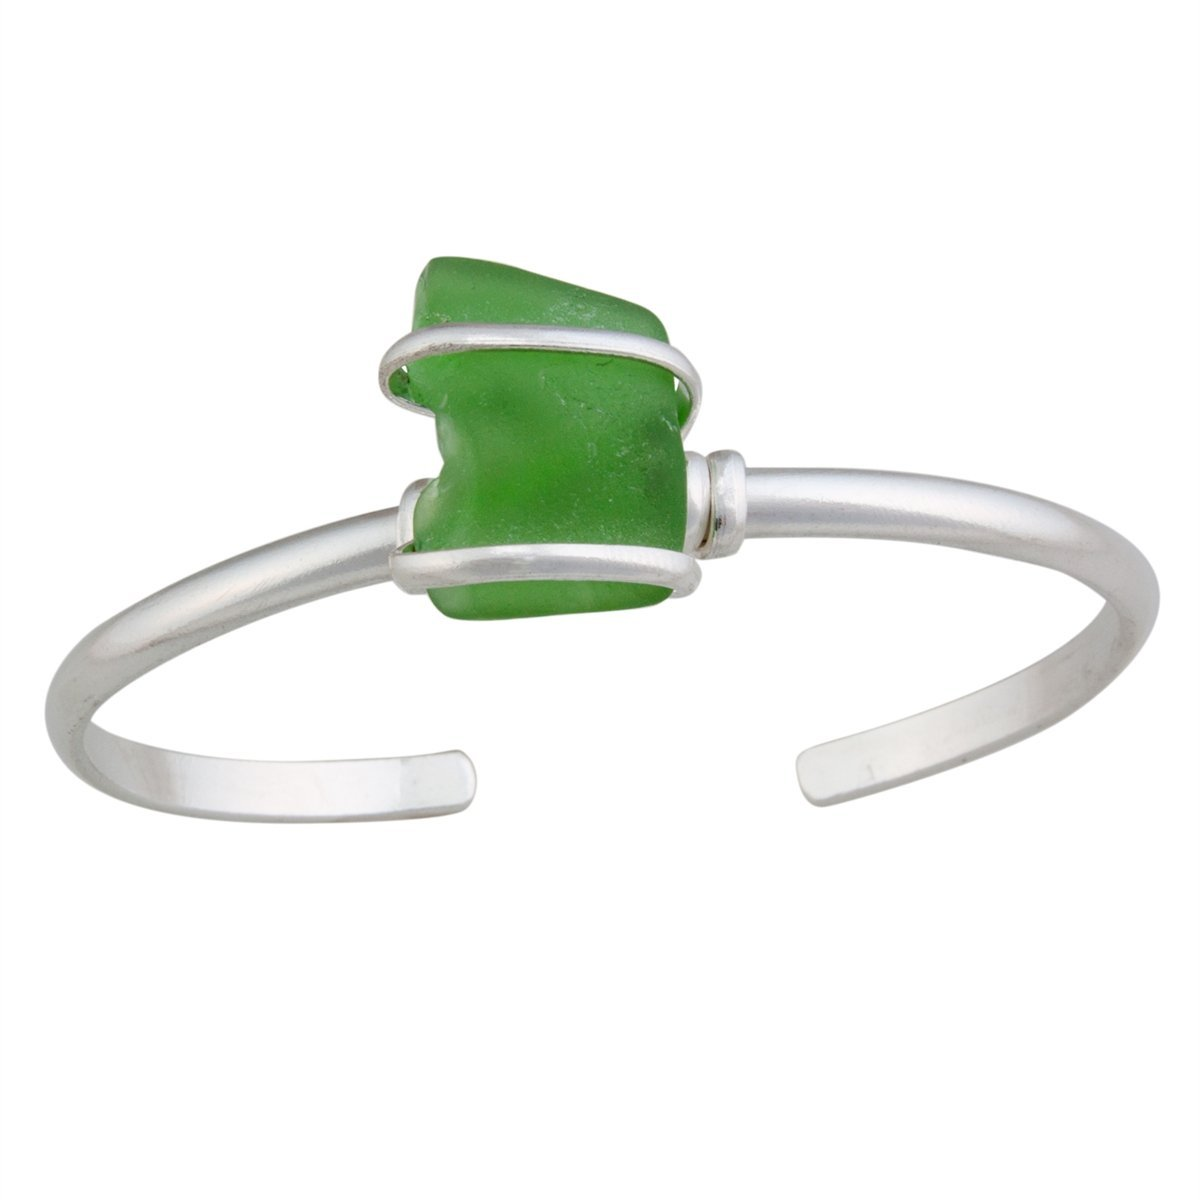 Alpaca Recycled Glass Mini Cuff - Green | Charles Albert Jewelry